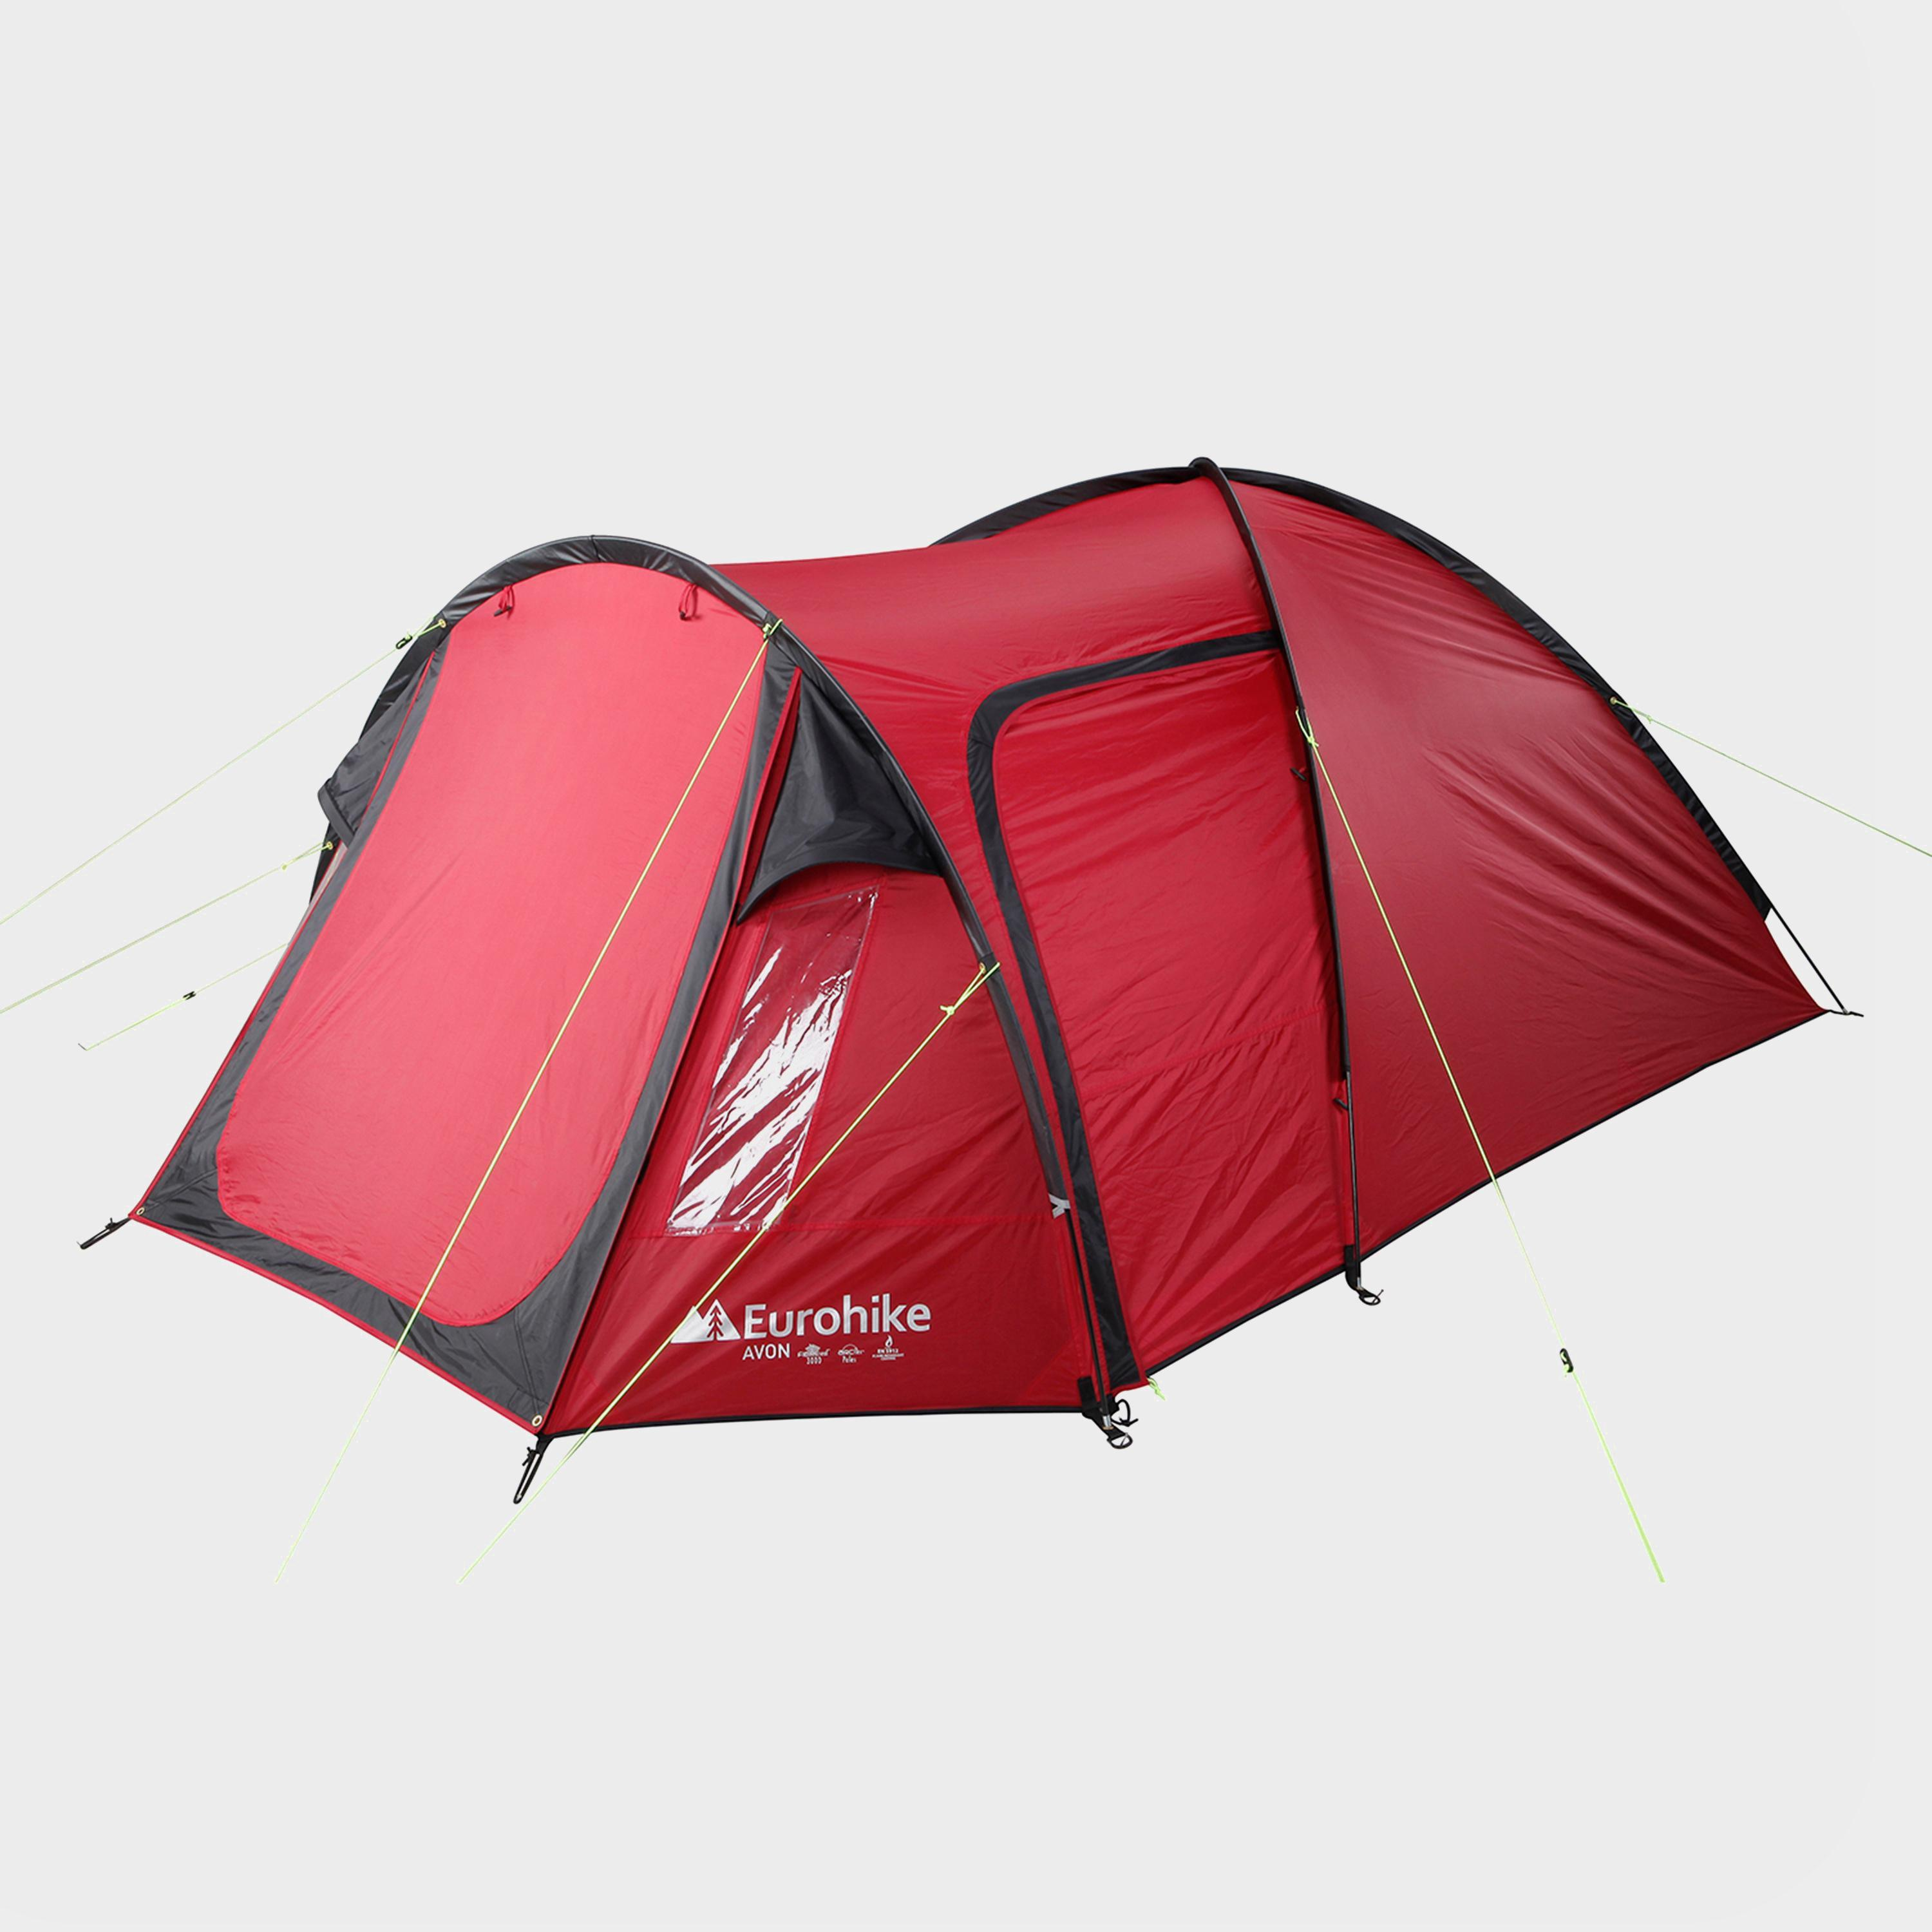 Red EUROHIKE Avon DLX 3 Man Tent & Equipment   Festival Tents   Ultimate Outdoors